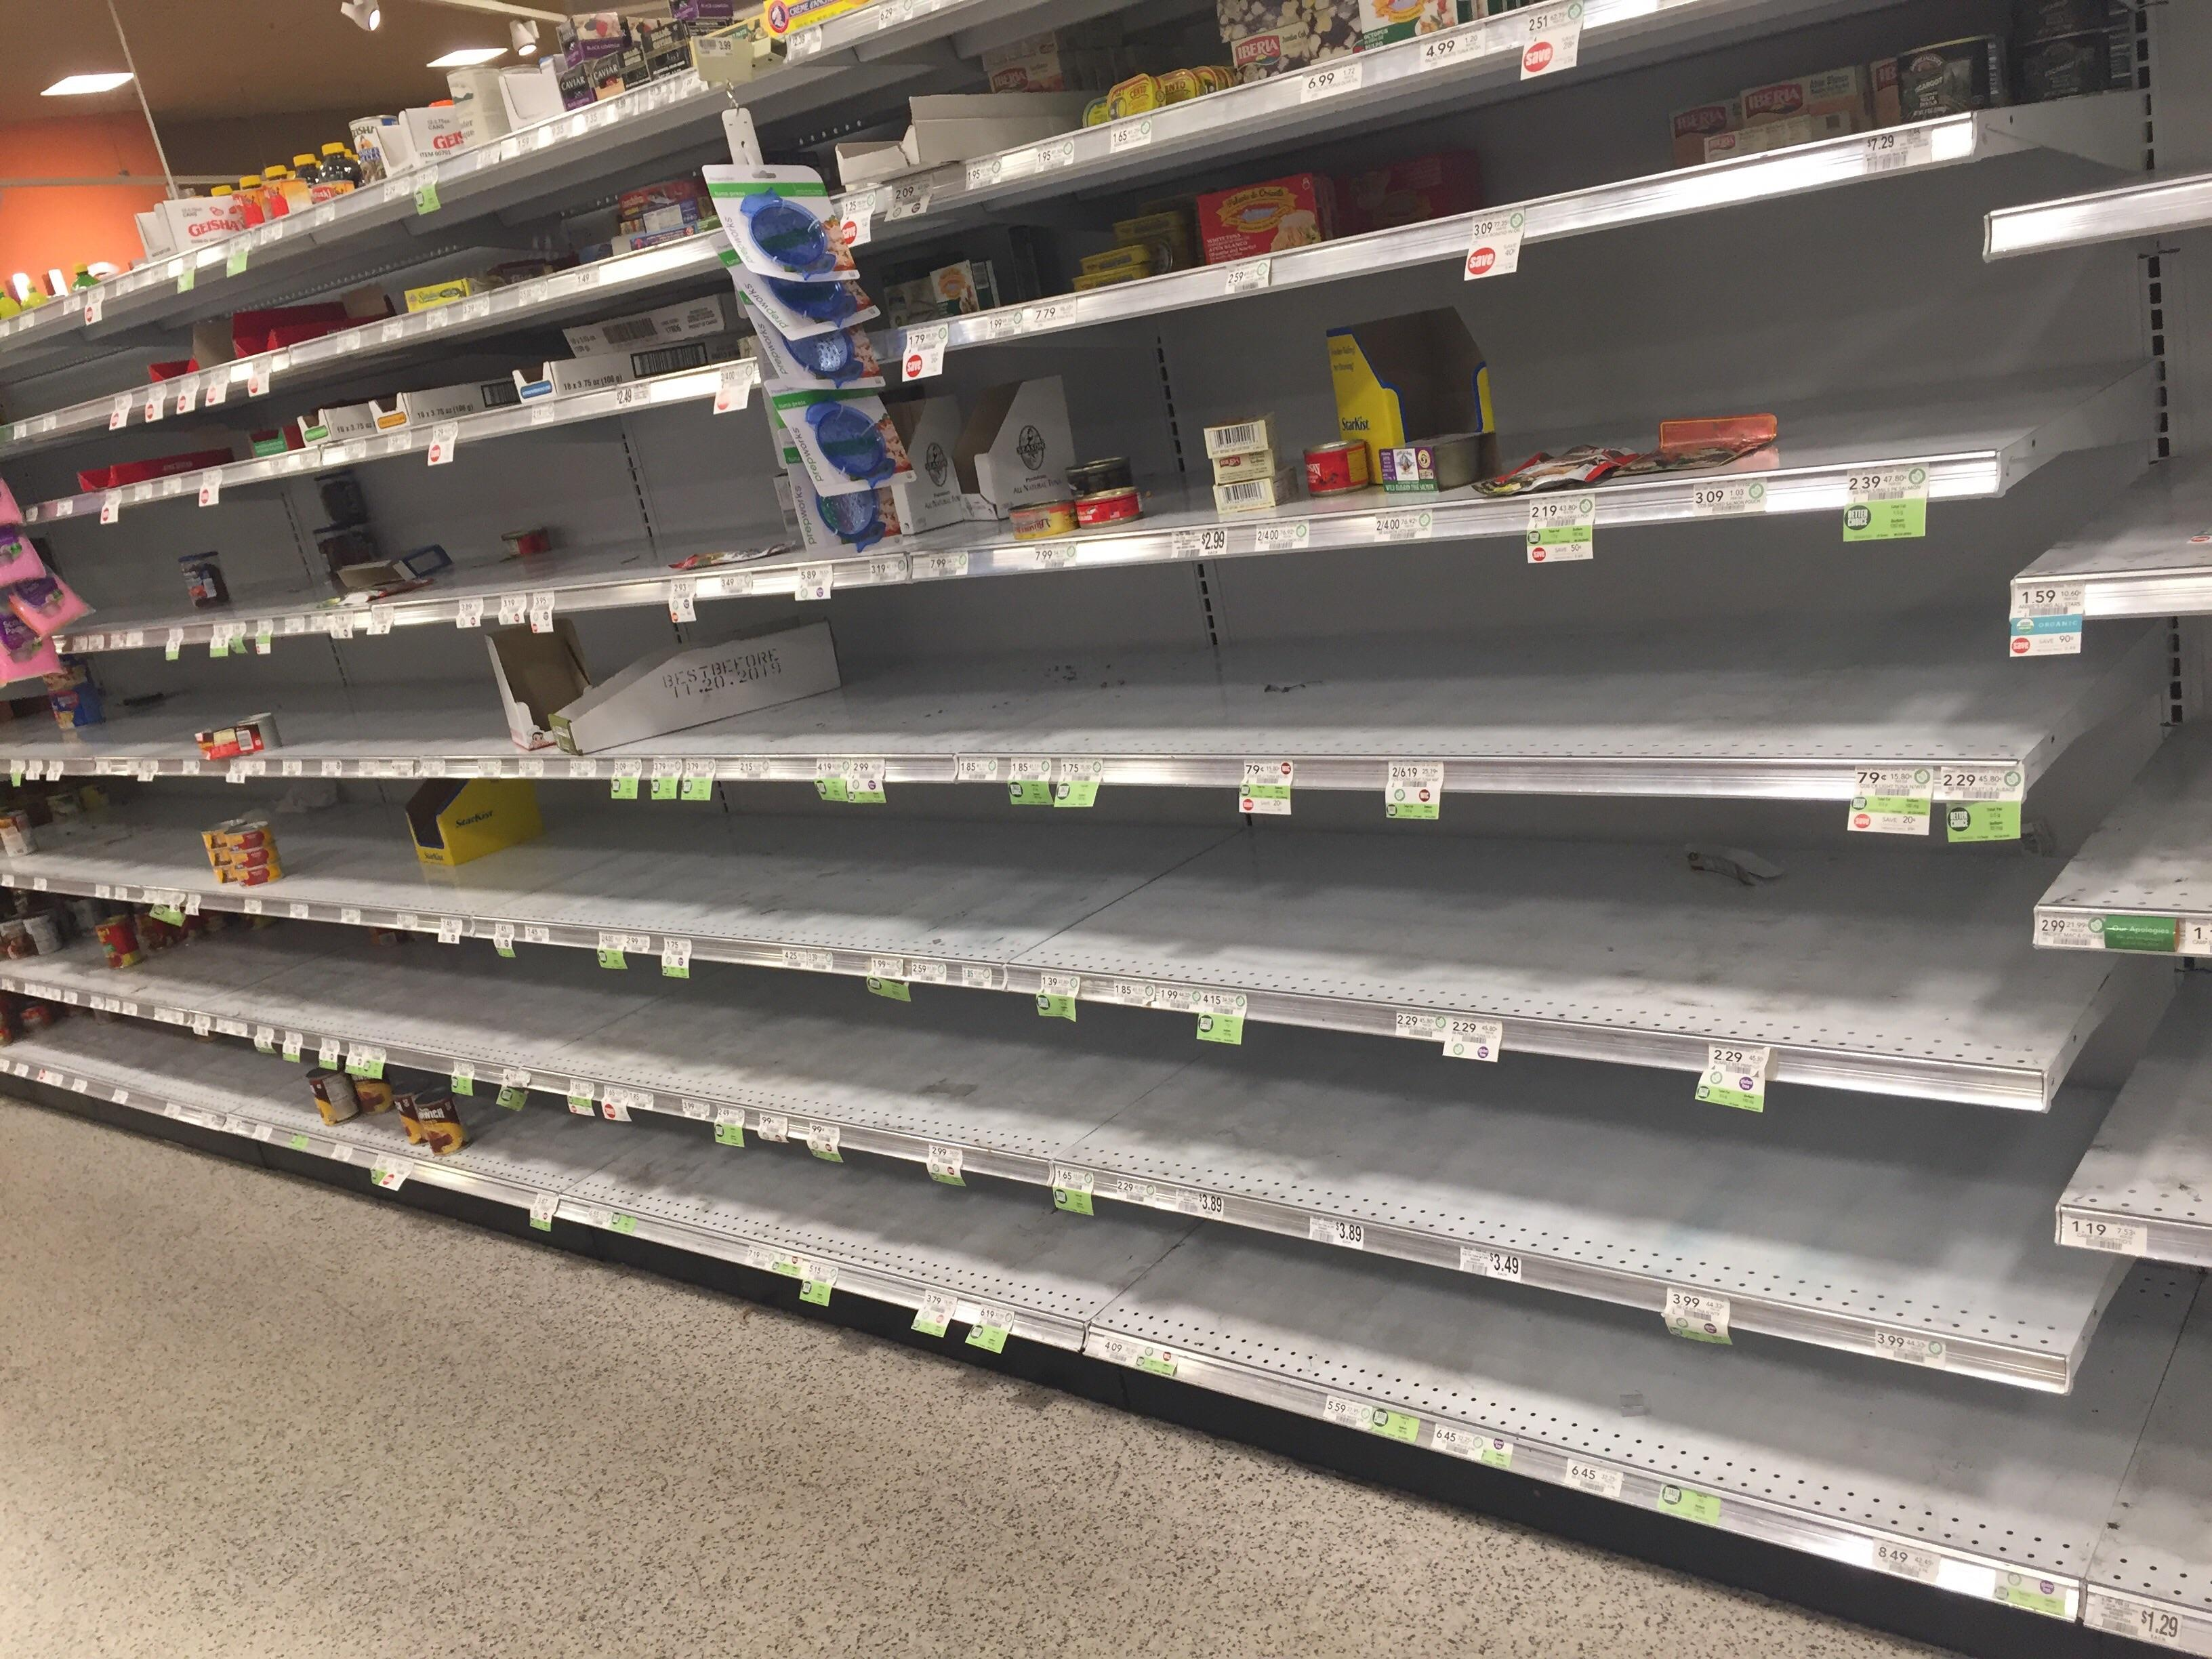 Everyone's Posting Empty Water Shelves, But This Was The Canned Meat